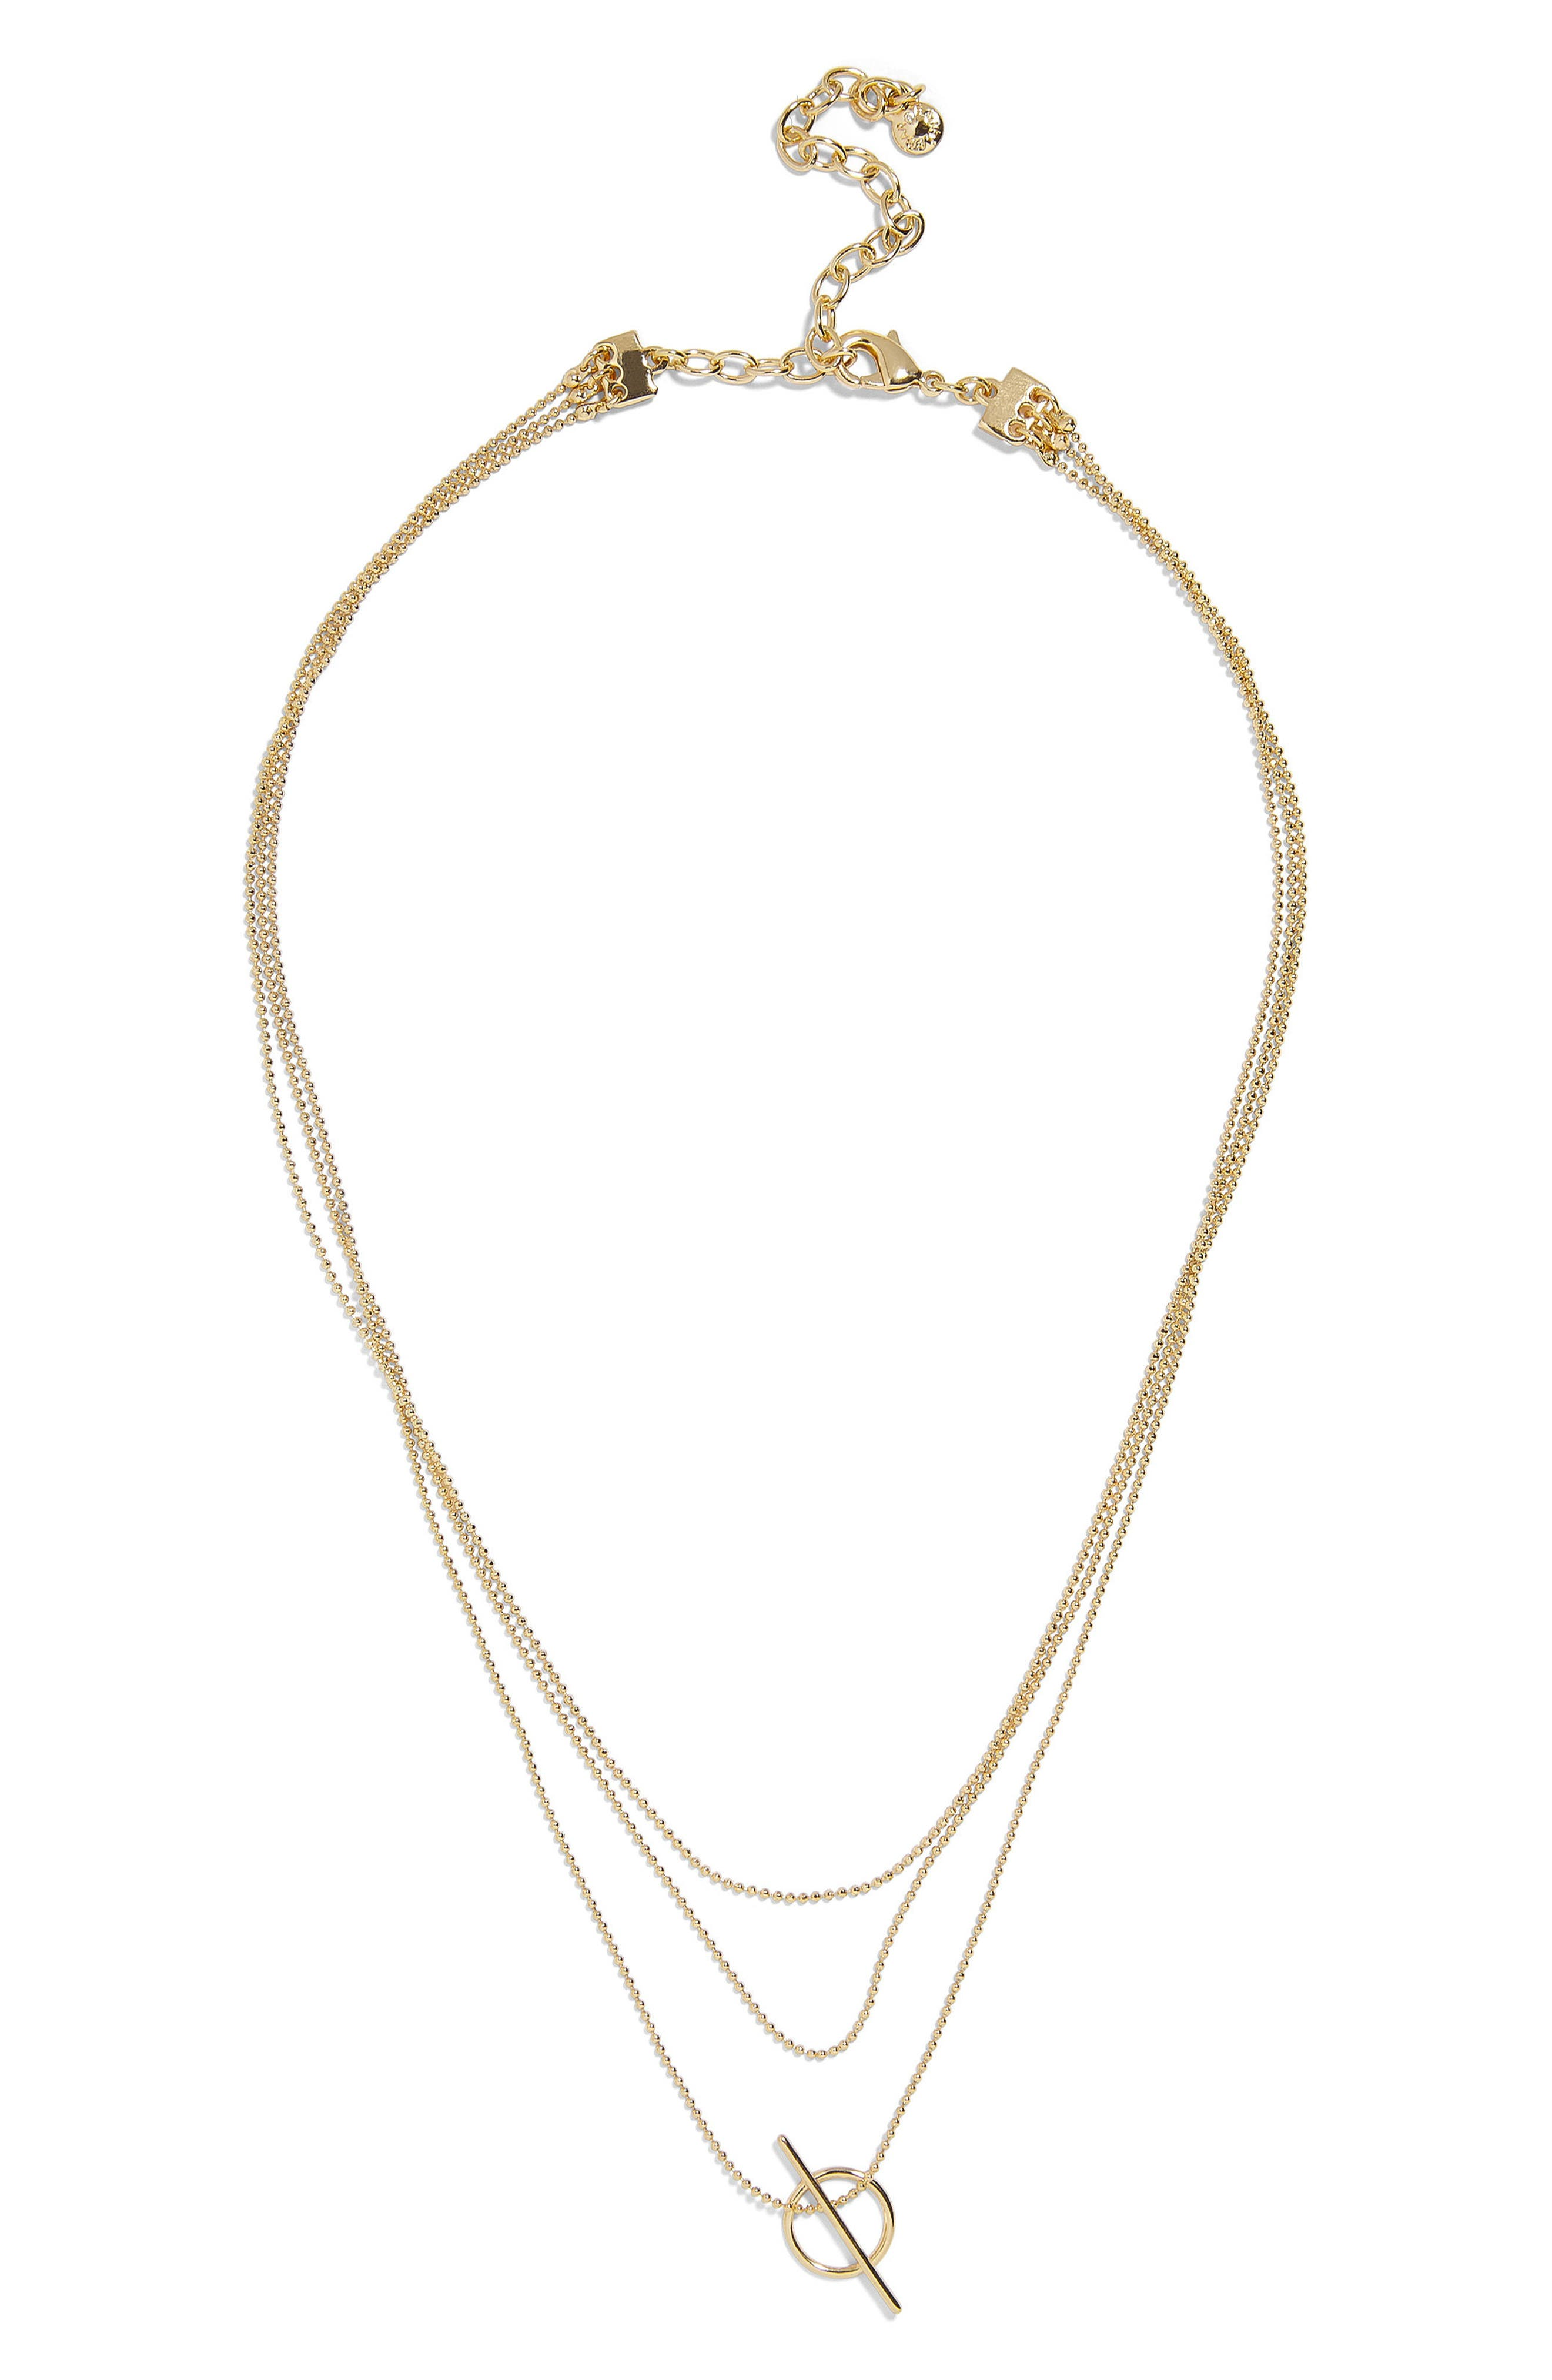 Delicate Bead Chain Necklace,                             Main thumbnail 1, color,                             711